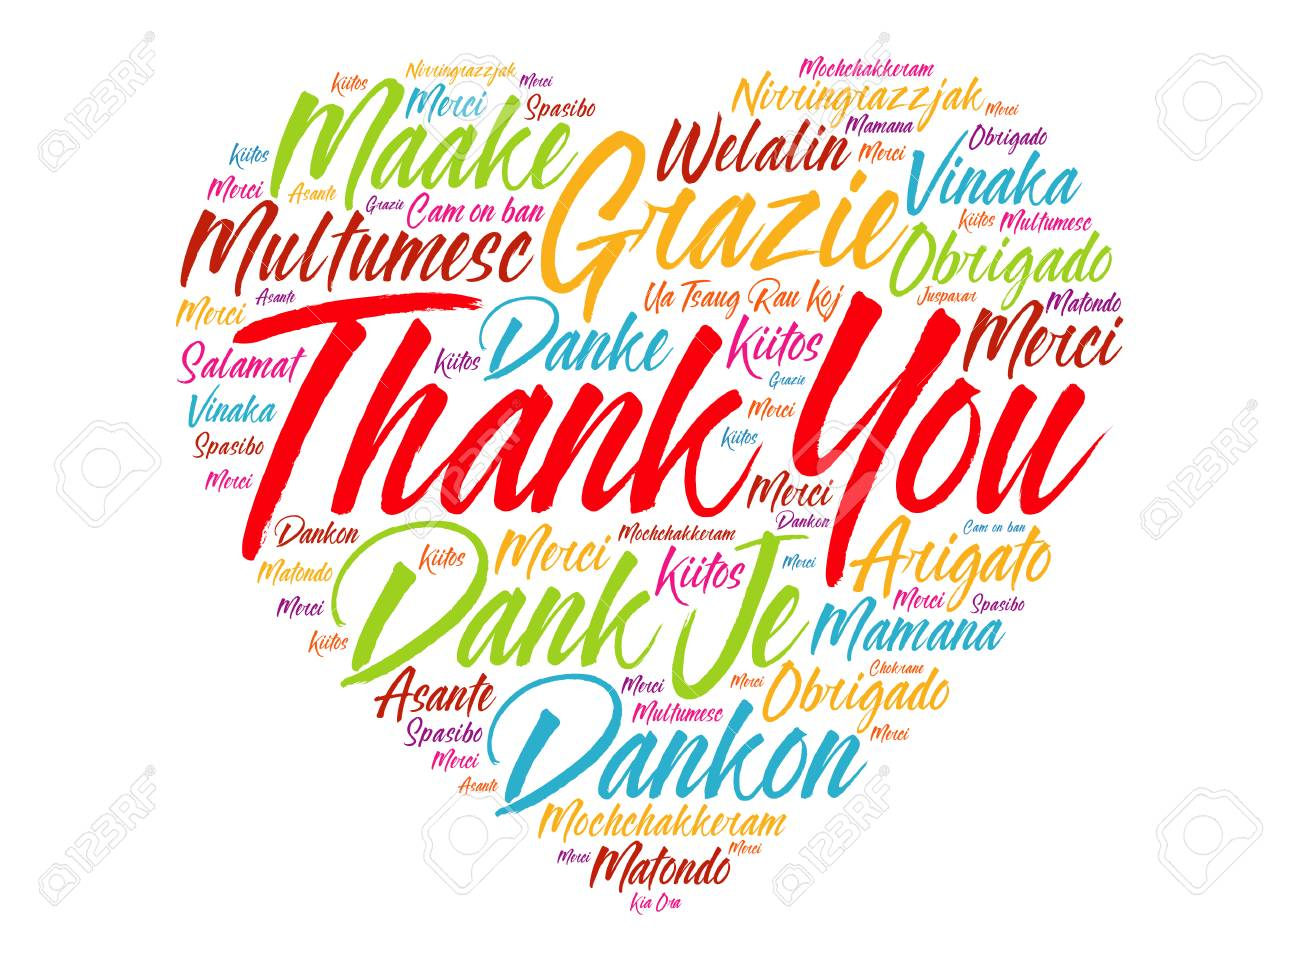 thank you love heart word cloud in different languages concept rh 123rf com free thank you in different languages clipart thank you in many languages clipart